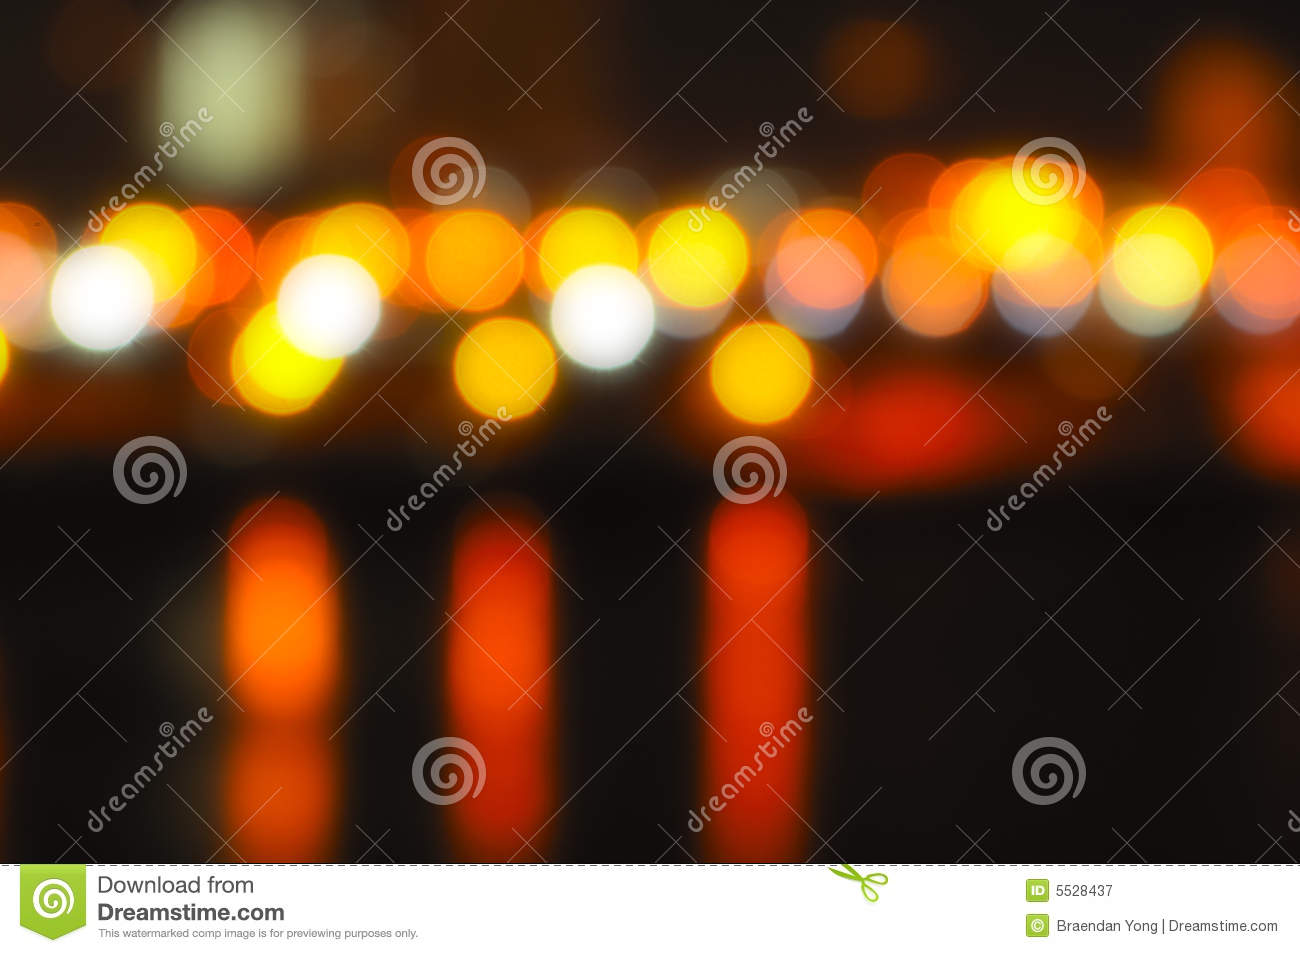 Blurred Vision Royalty Free Stock Photography - Image: 5528437